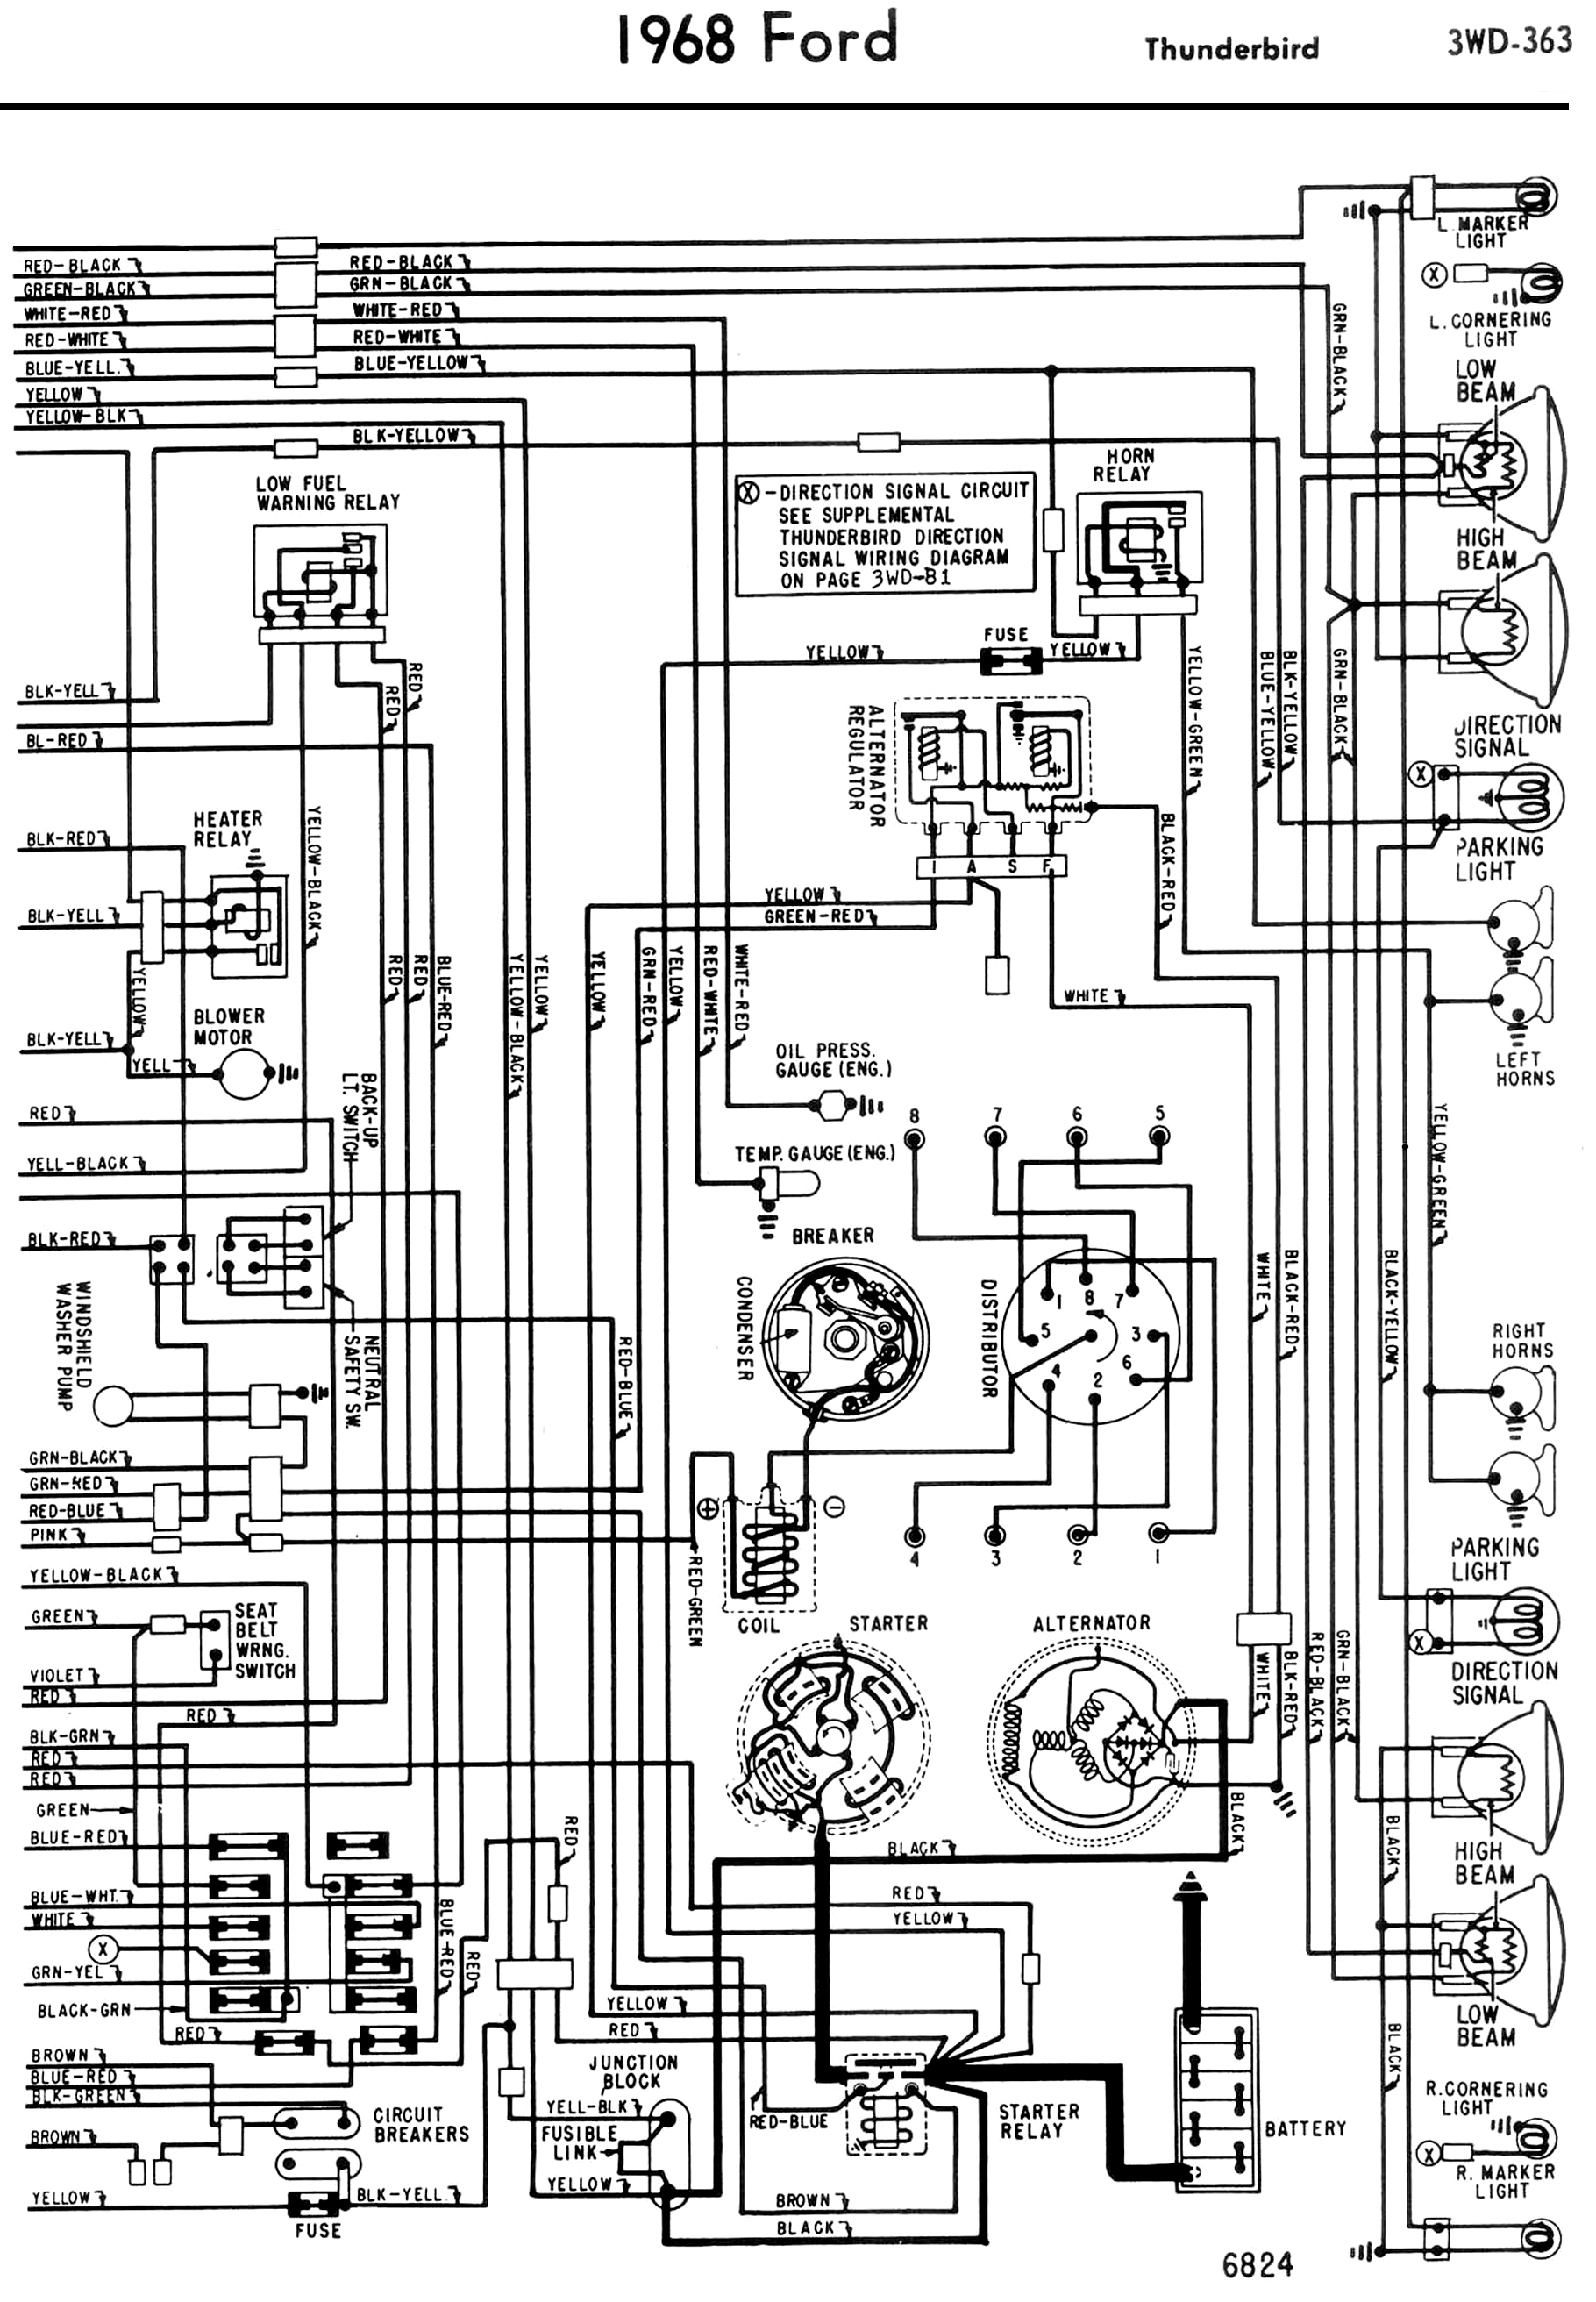 1969 Thunderbird Wiring Diagram Ford Radio Schematic Library1958 68 Electrical Schematics 1962 Generator Light